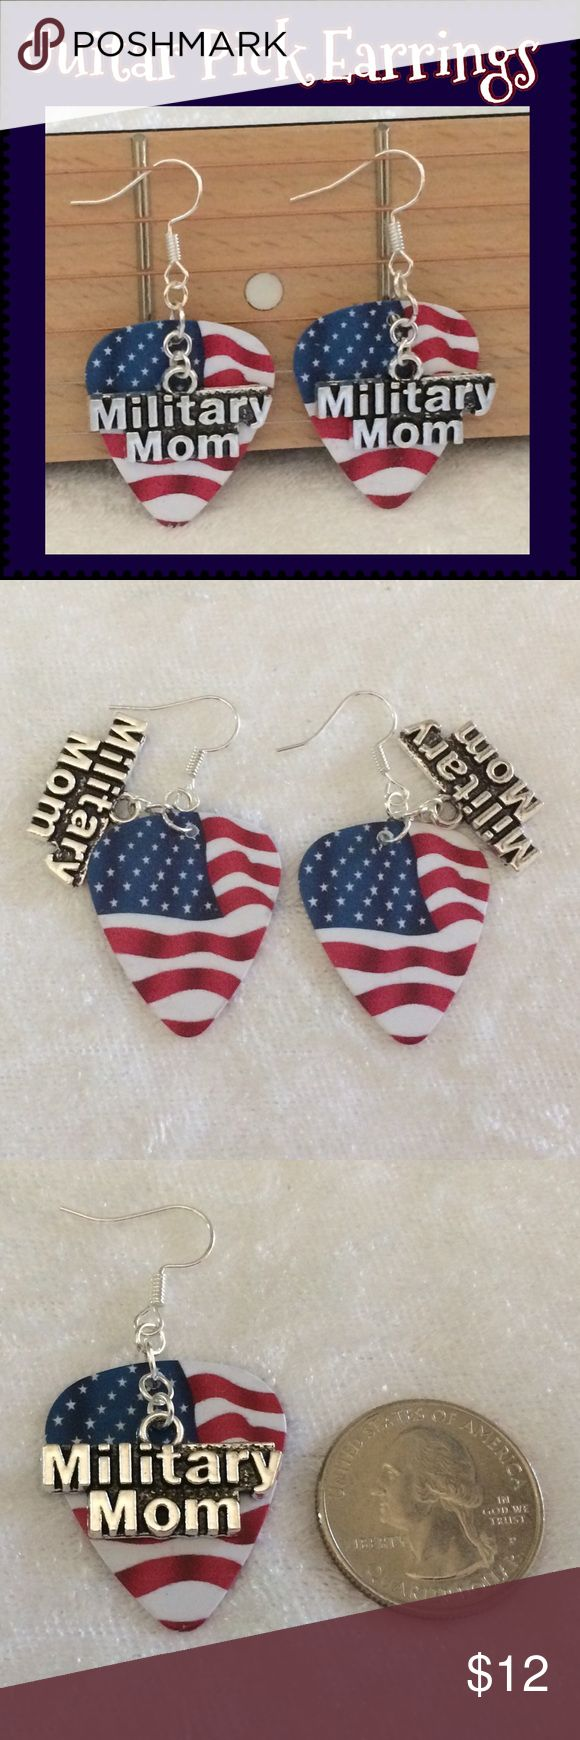 """❤️American Flag Guitar Pick Military Mom Earrings These earrings are made with American Flag heavy card stock printed guitar picks, Tibetan antique silver """"Military Mom"""" charms & silver-plated ear wires & rings. 2"""" long including ear wire*. Handcrafted by me.   *Can be replaced w/ Sterling Silver for additional $1. Comment for a custom listing.  Jewelry items are priced firm as single purchase due to material cost & PM fees.    Bundle special on guitar pick/choker/charm jewelry ONLY: Any 2…"""